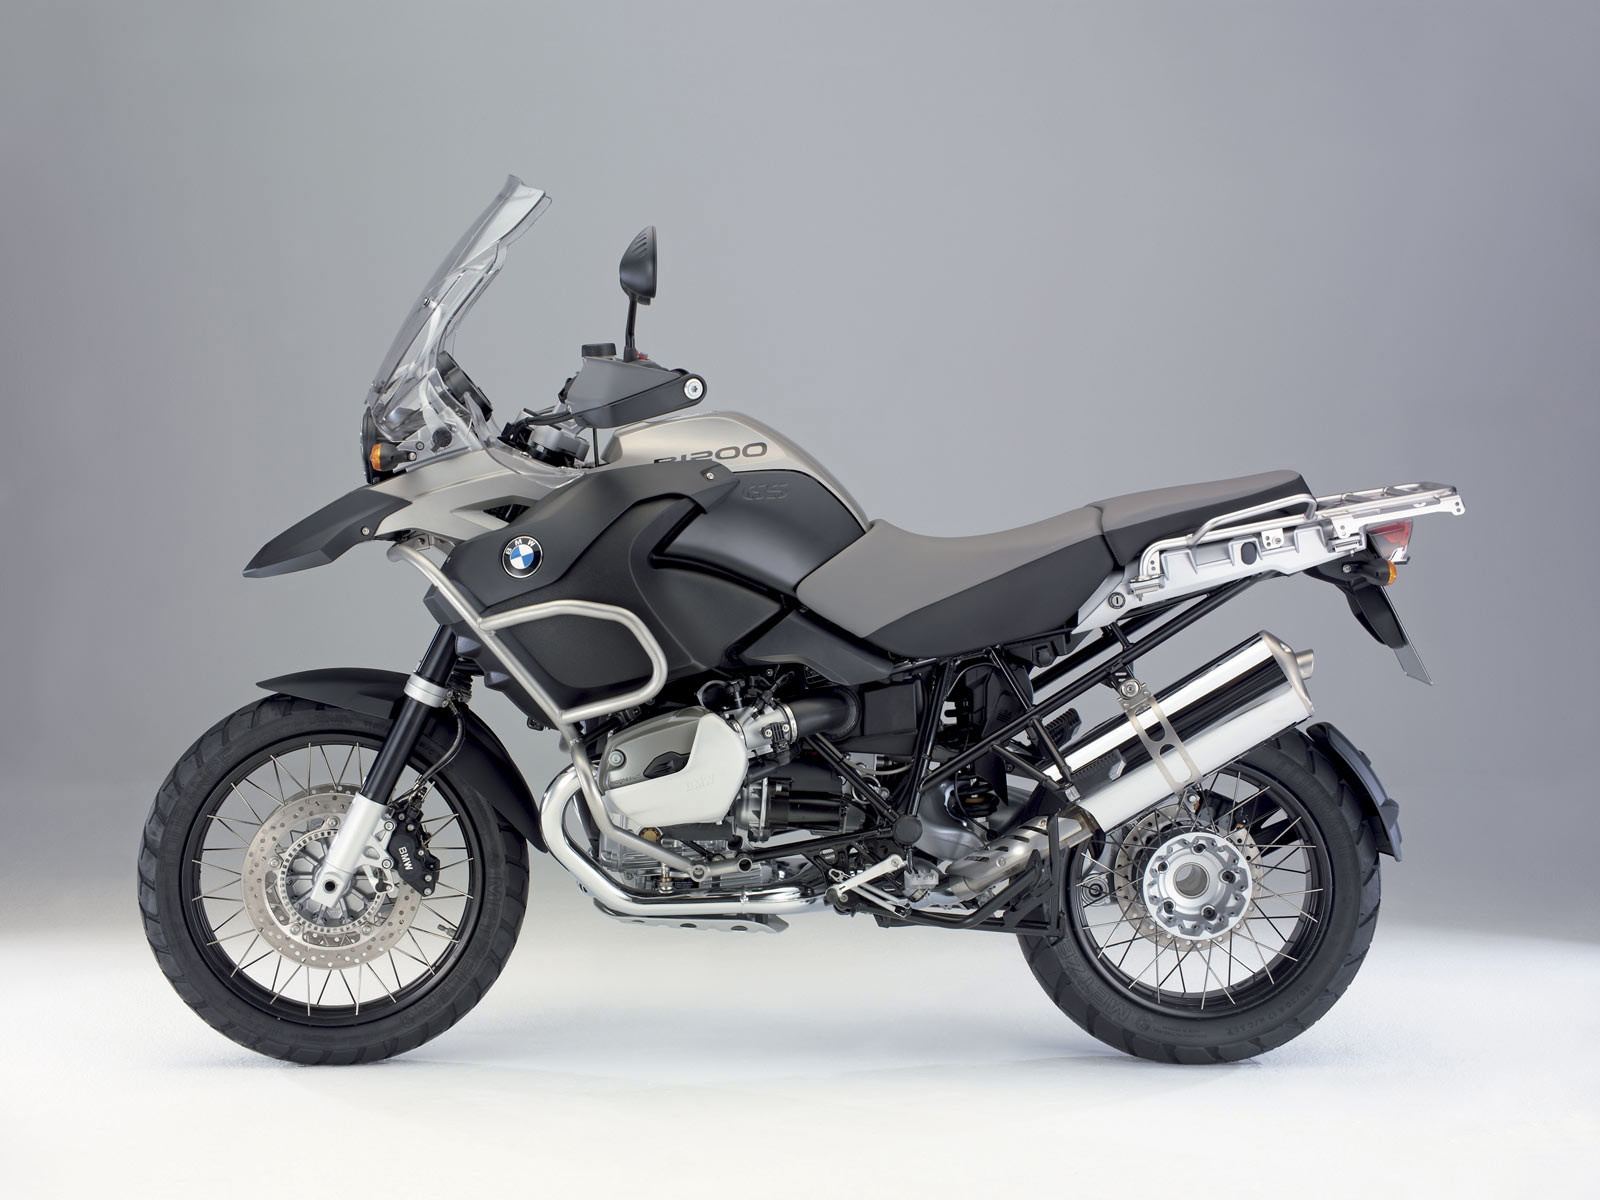 2008 bmw r1200gs adventures motorcycle wallpaper specs. Black Bedroom Furniture Sets. Home Design Ideas